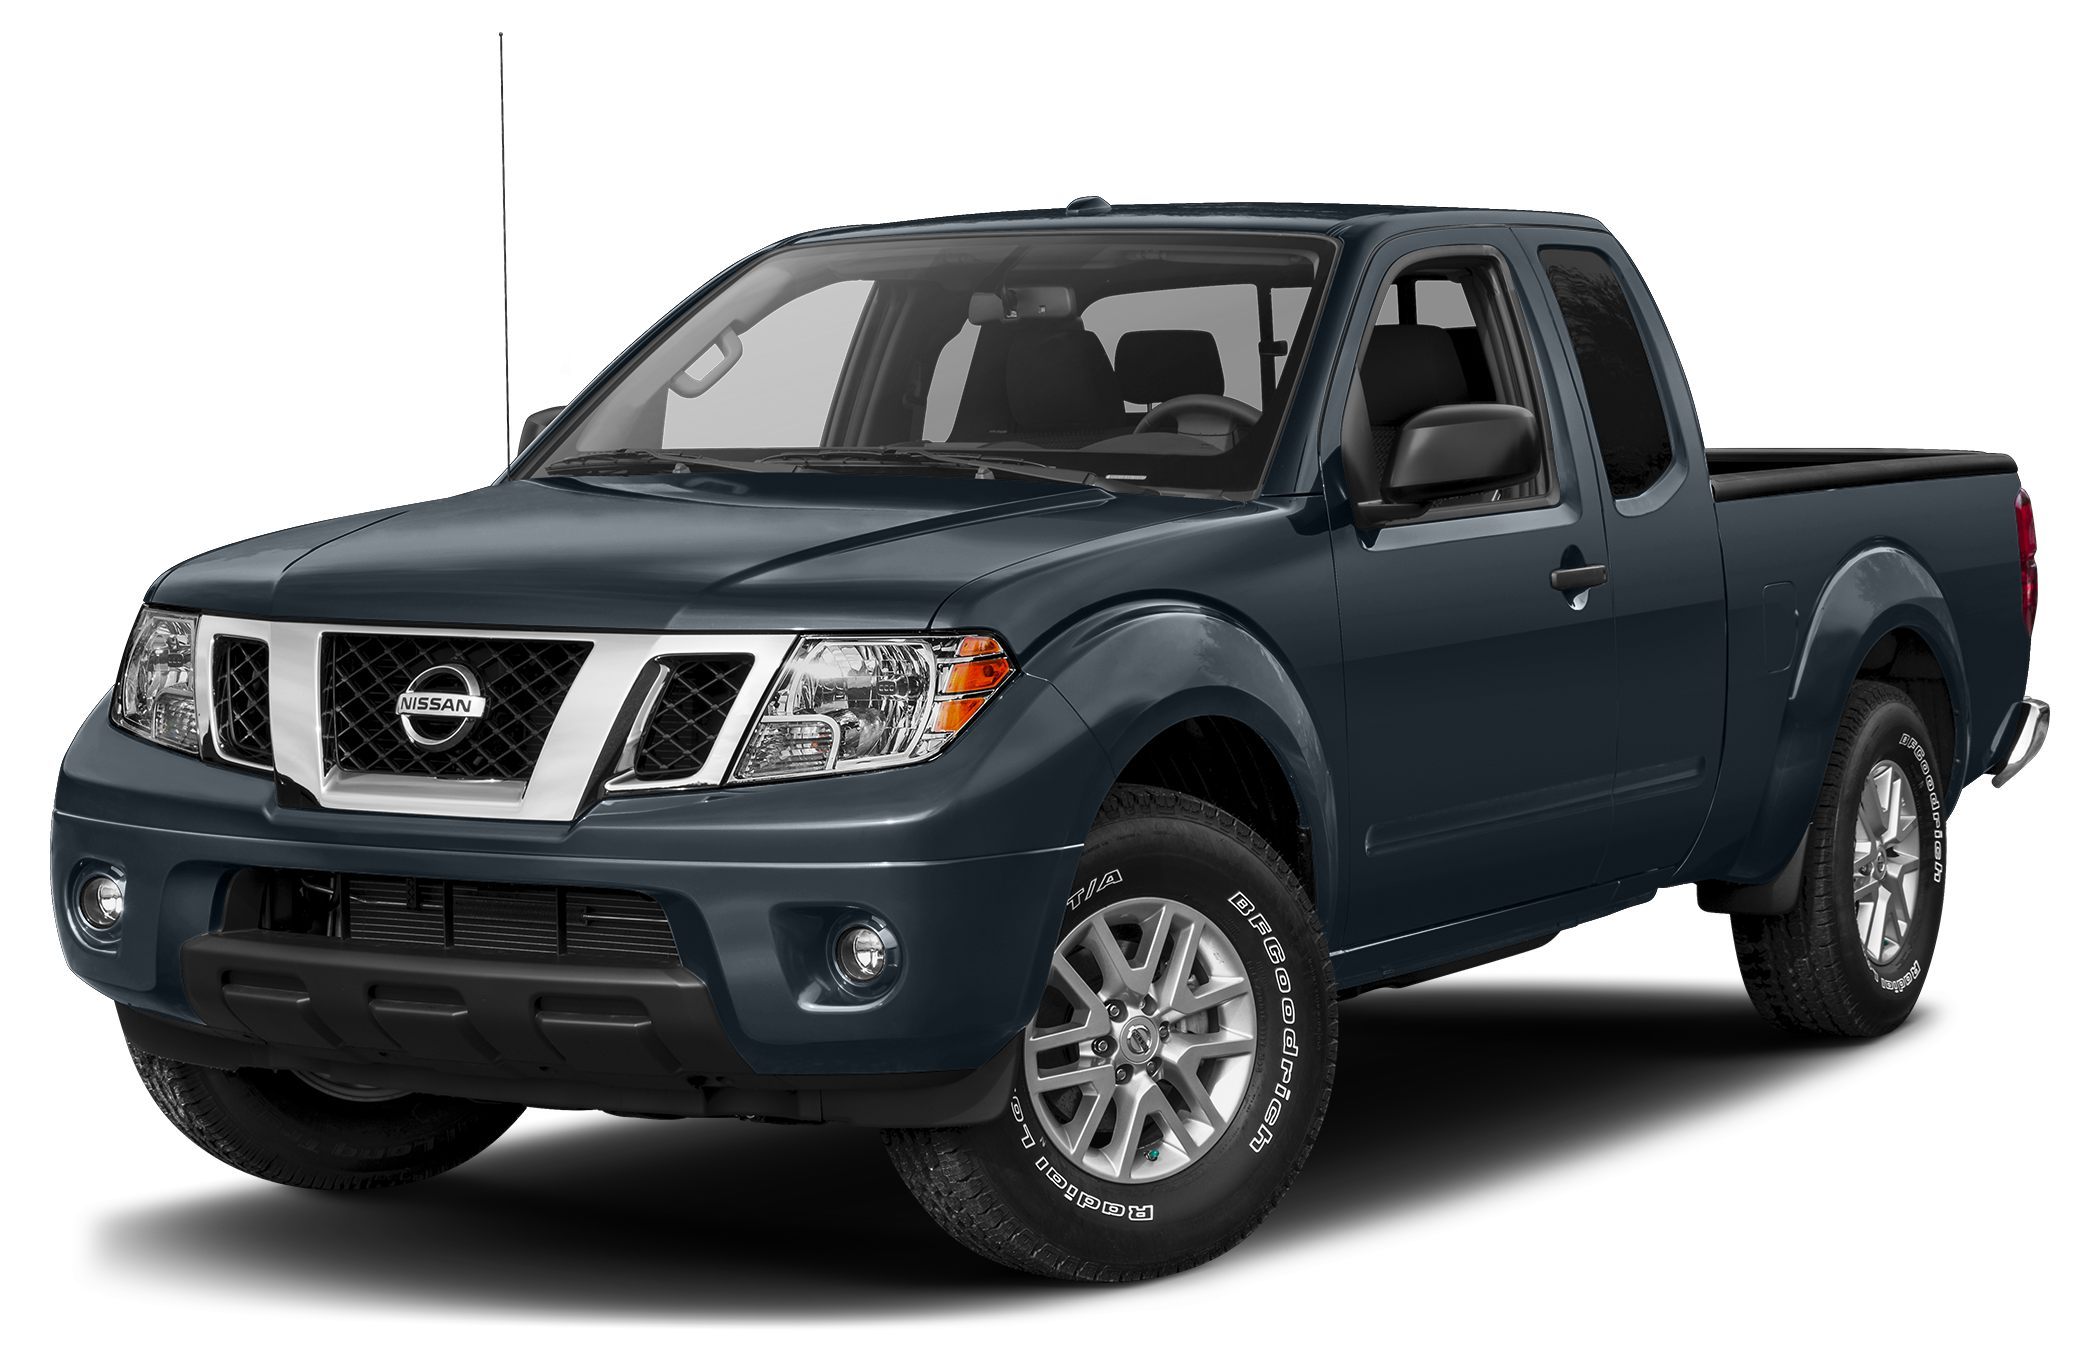 2016 Nissan Frontier S 2016 Nissan Frontier Blow out pricing Priced below MSRP Real gas sipper